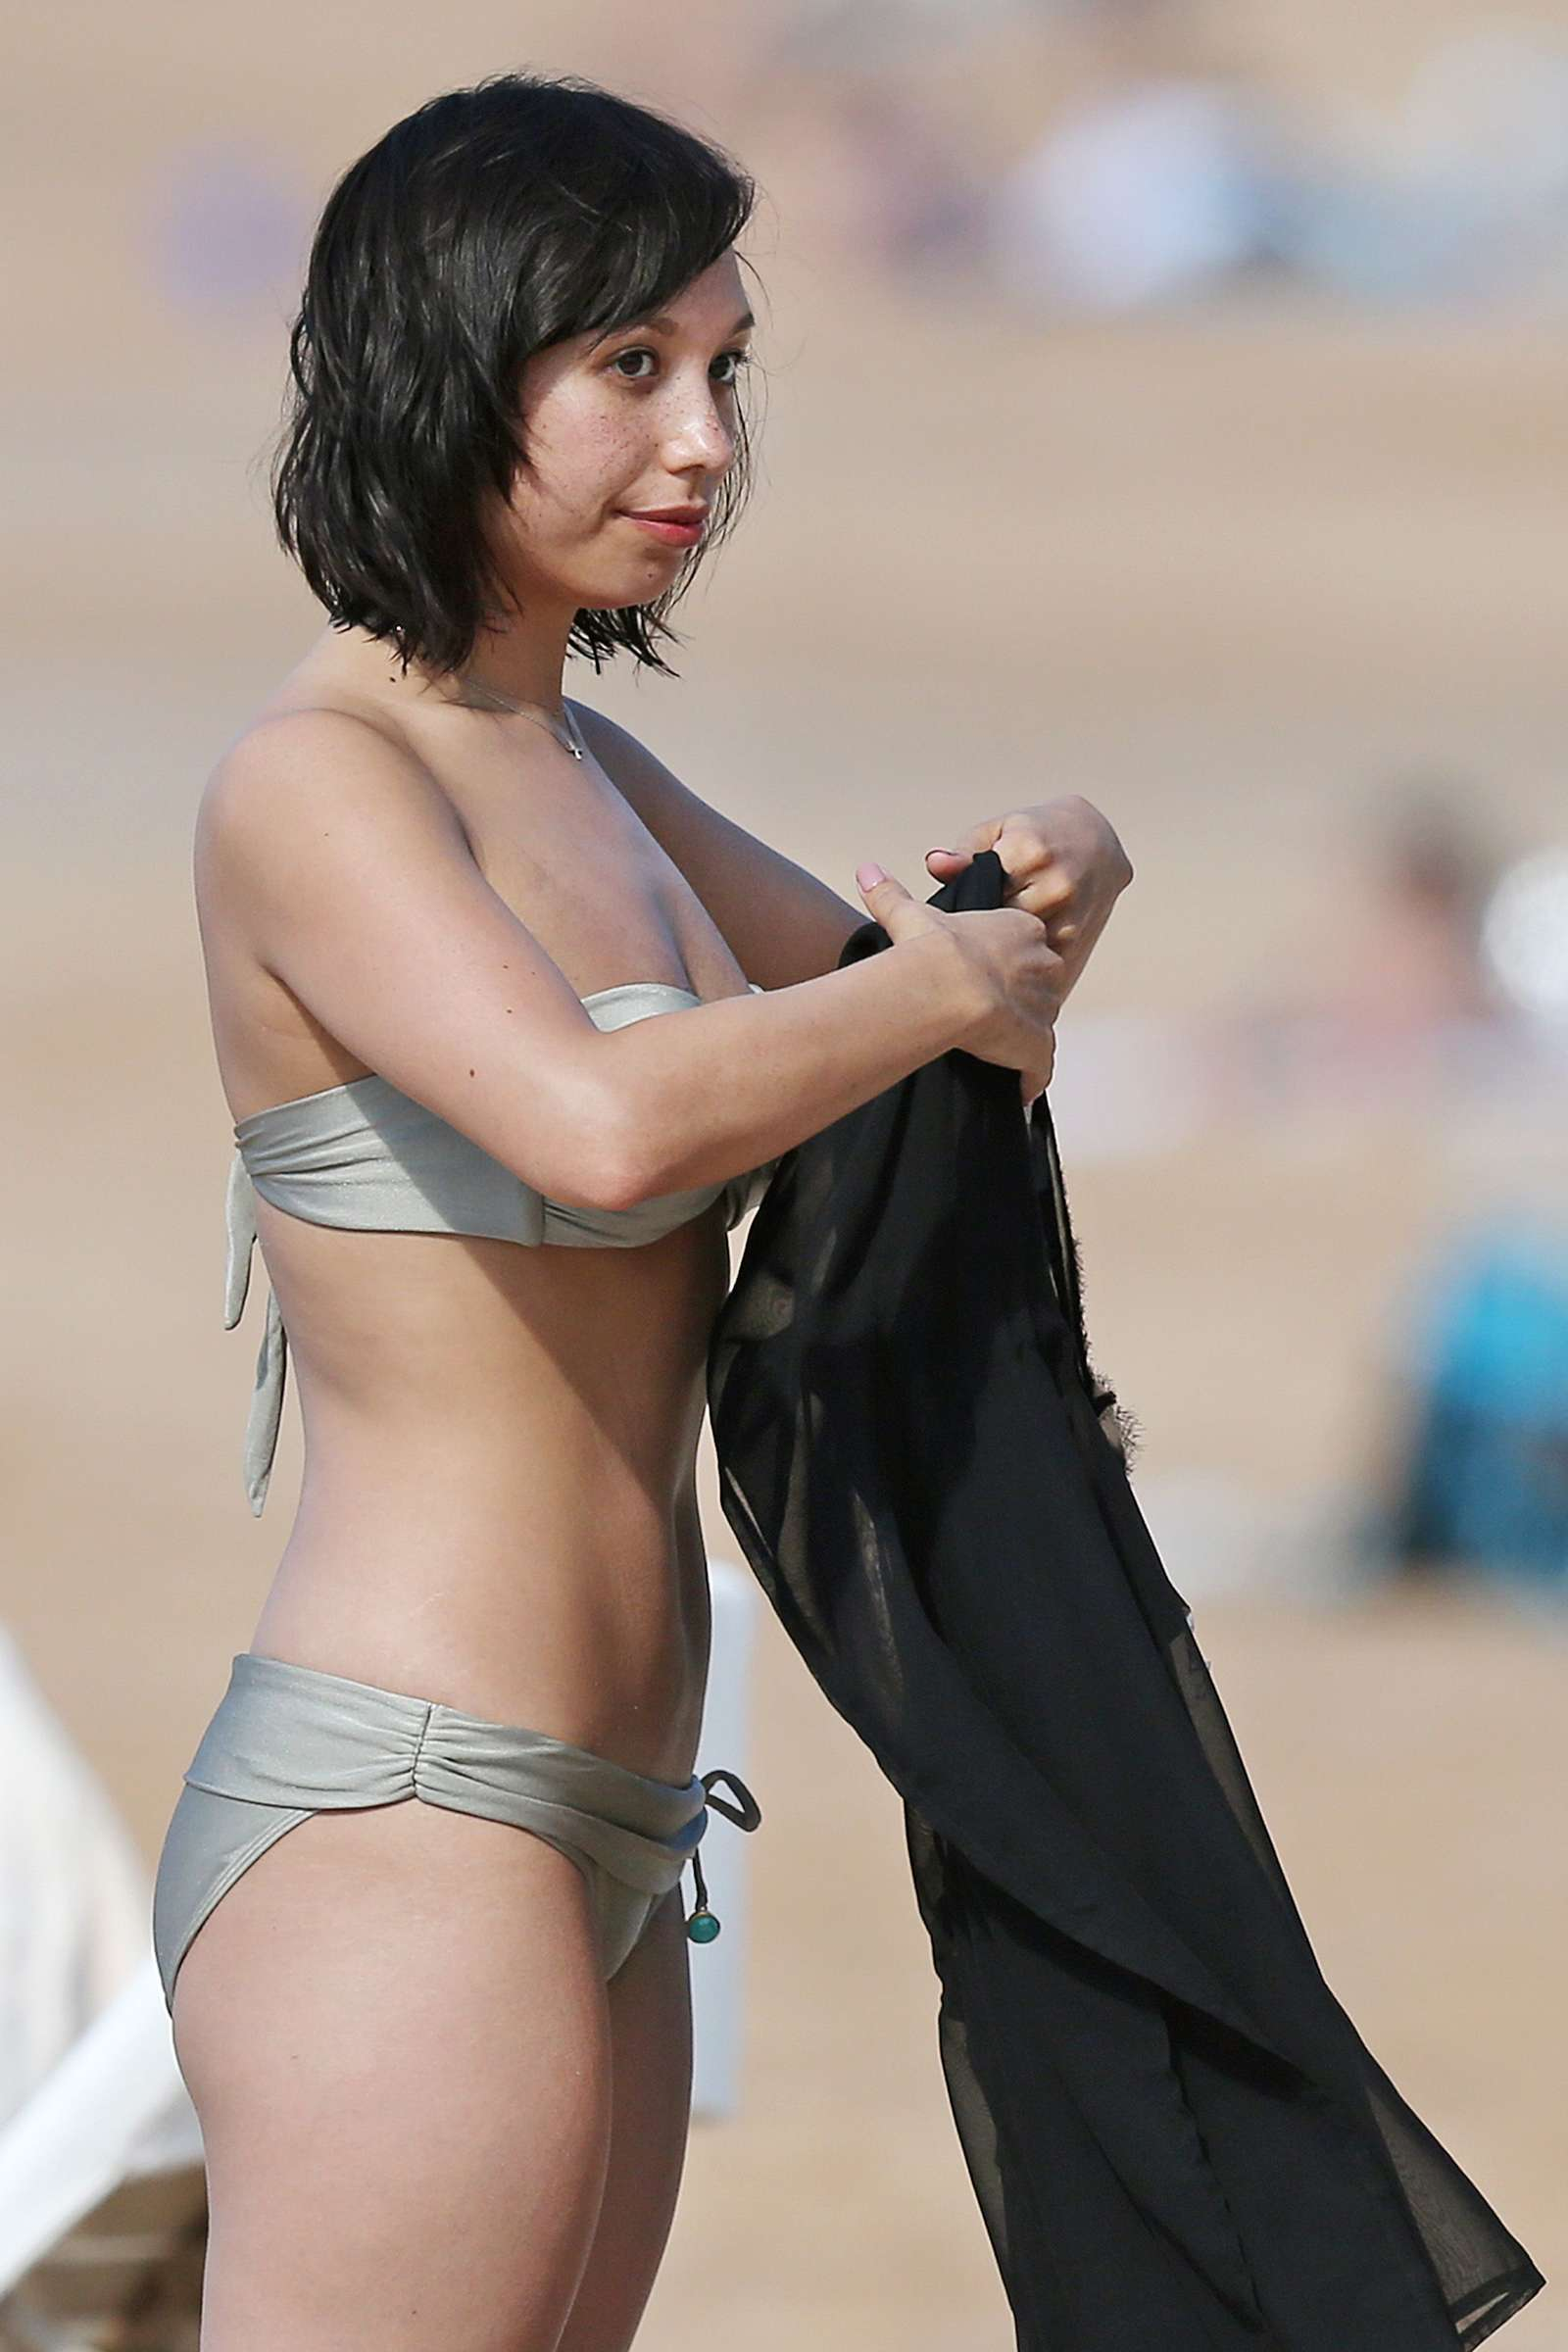 Bonetown free download pc